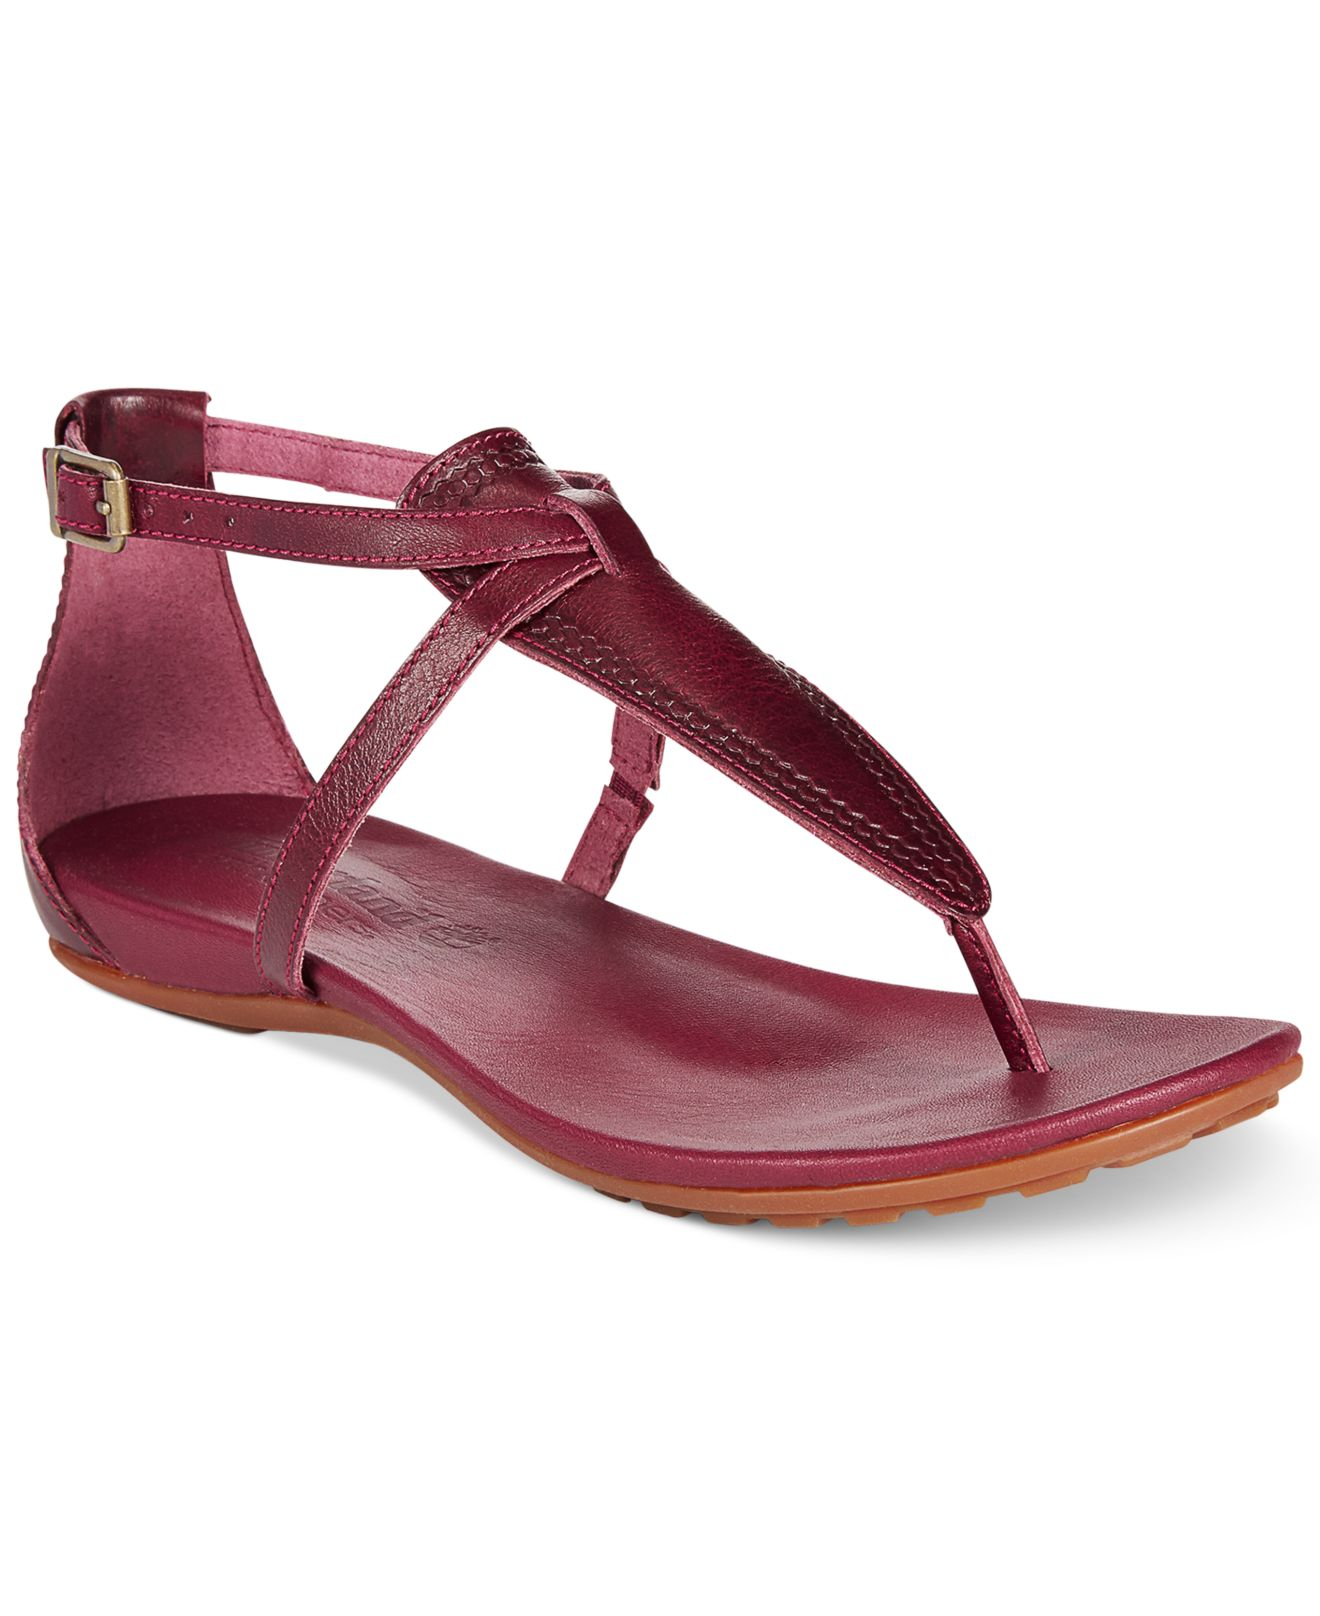 52dd49ec824 Lyst - Timberland Women S Earthkeepers Harbor View Ankle Strap Flat ...